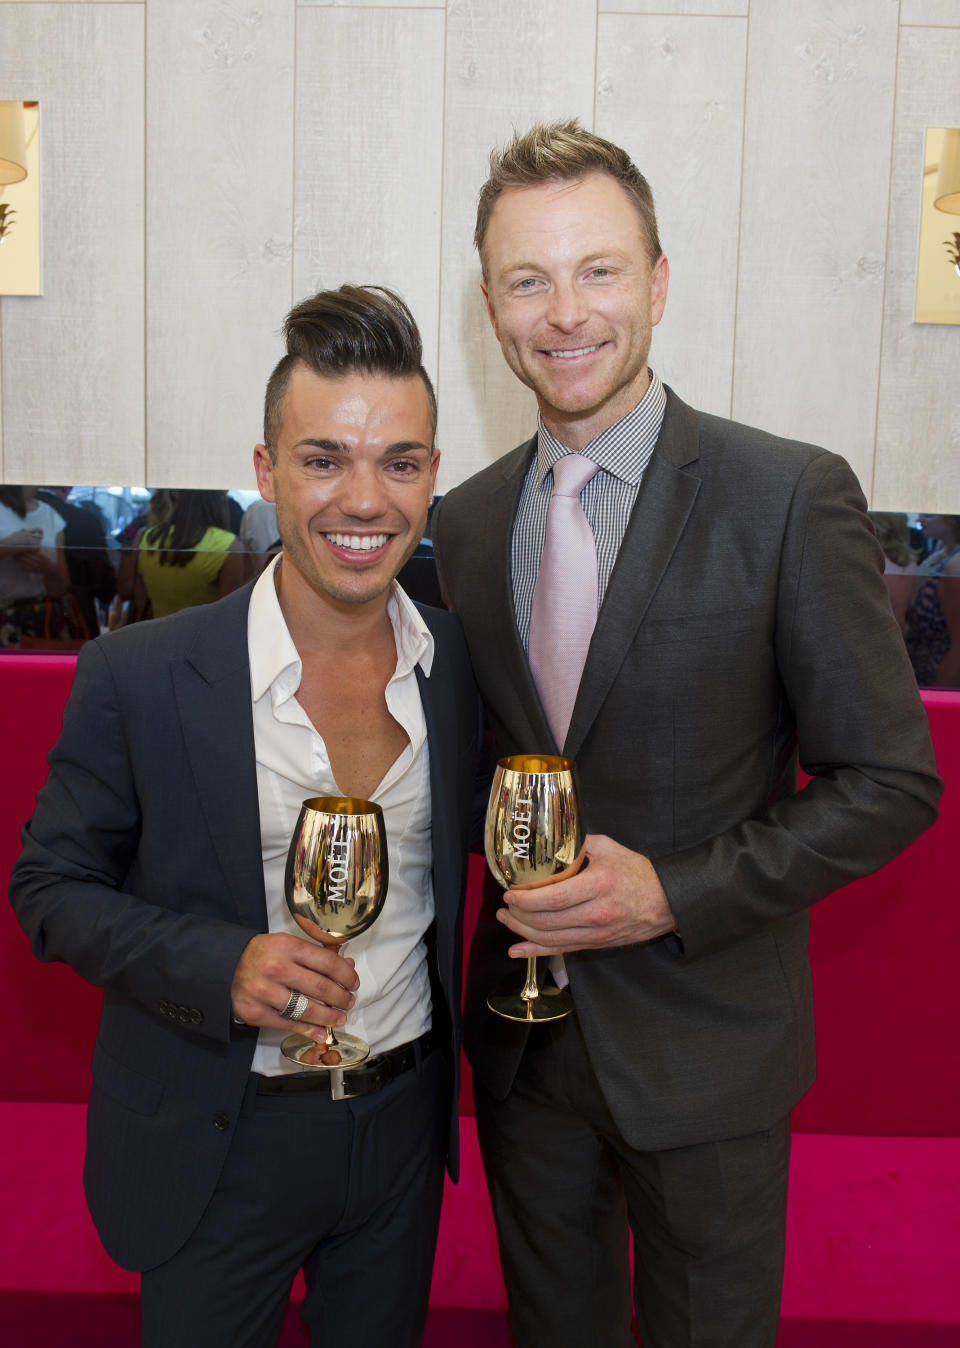 Anthony Callea and Tim Campbell attend Magic Millions Race Day on January 11, 2014 in Gold Coast, Australia